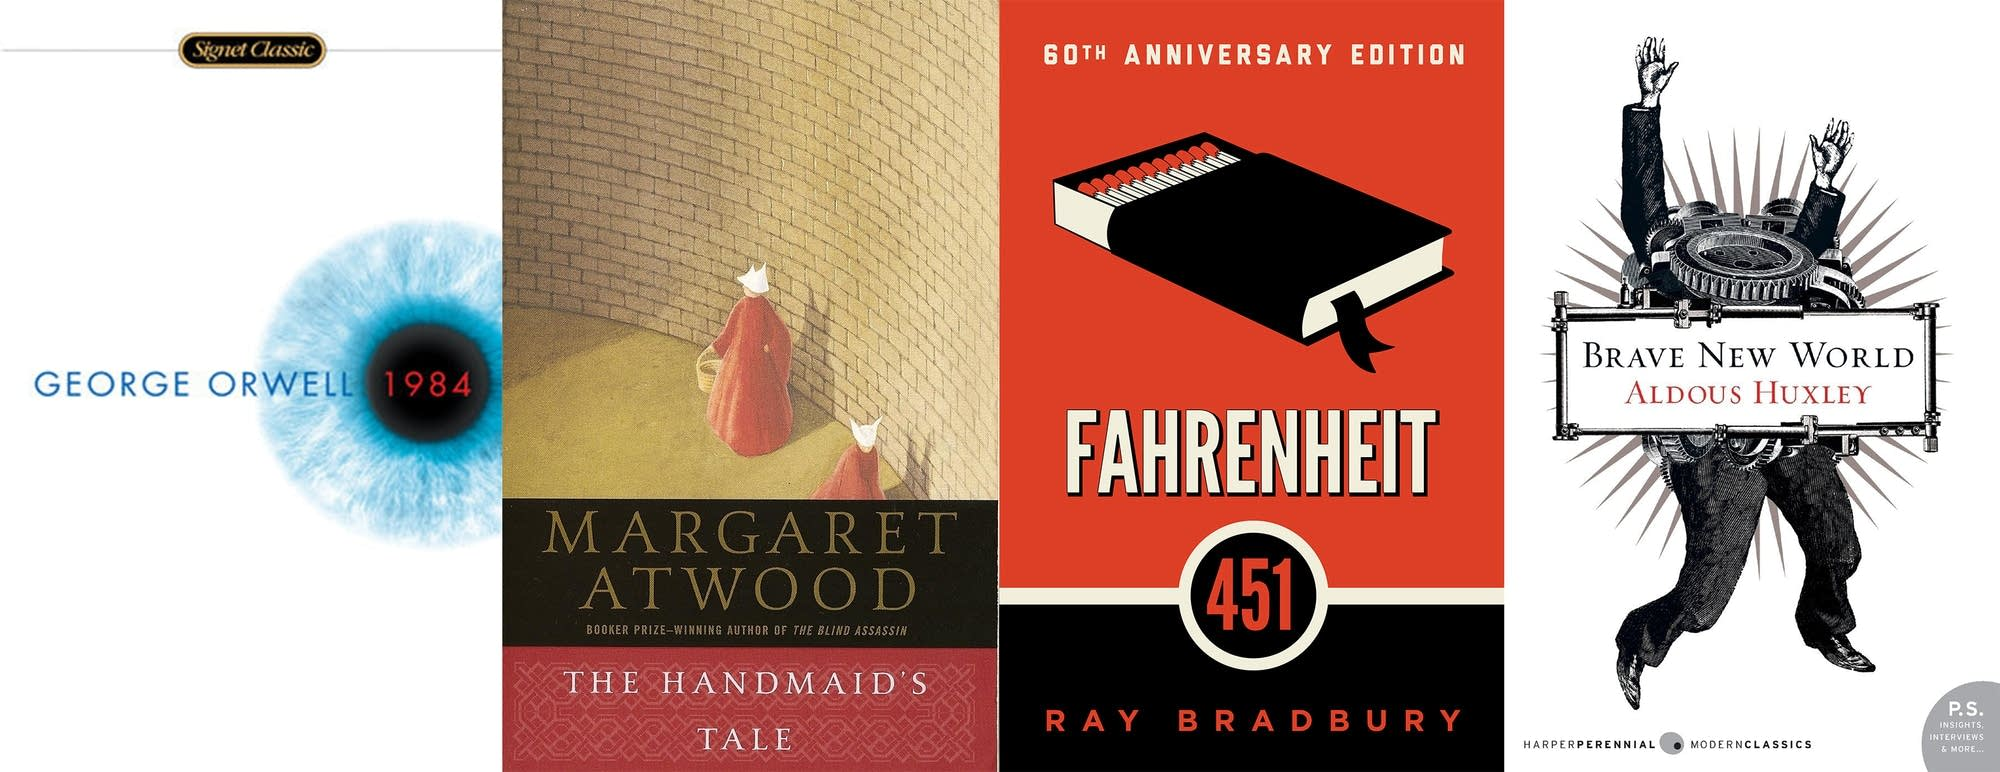 freedom in 1984 by george orwell brave new world by aldous huxley and fahrenheit 451 by ray bradbury